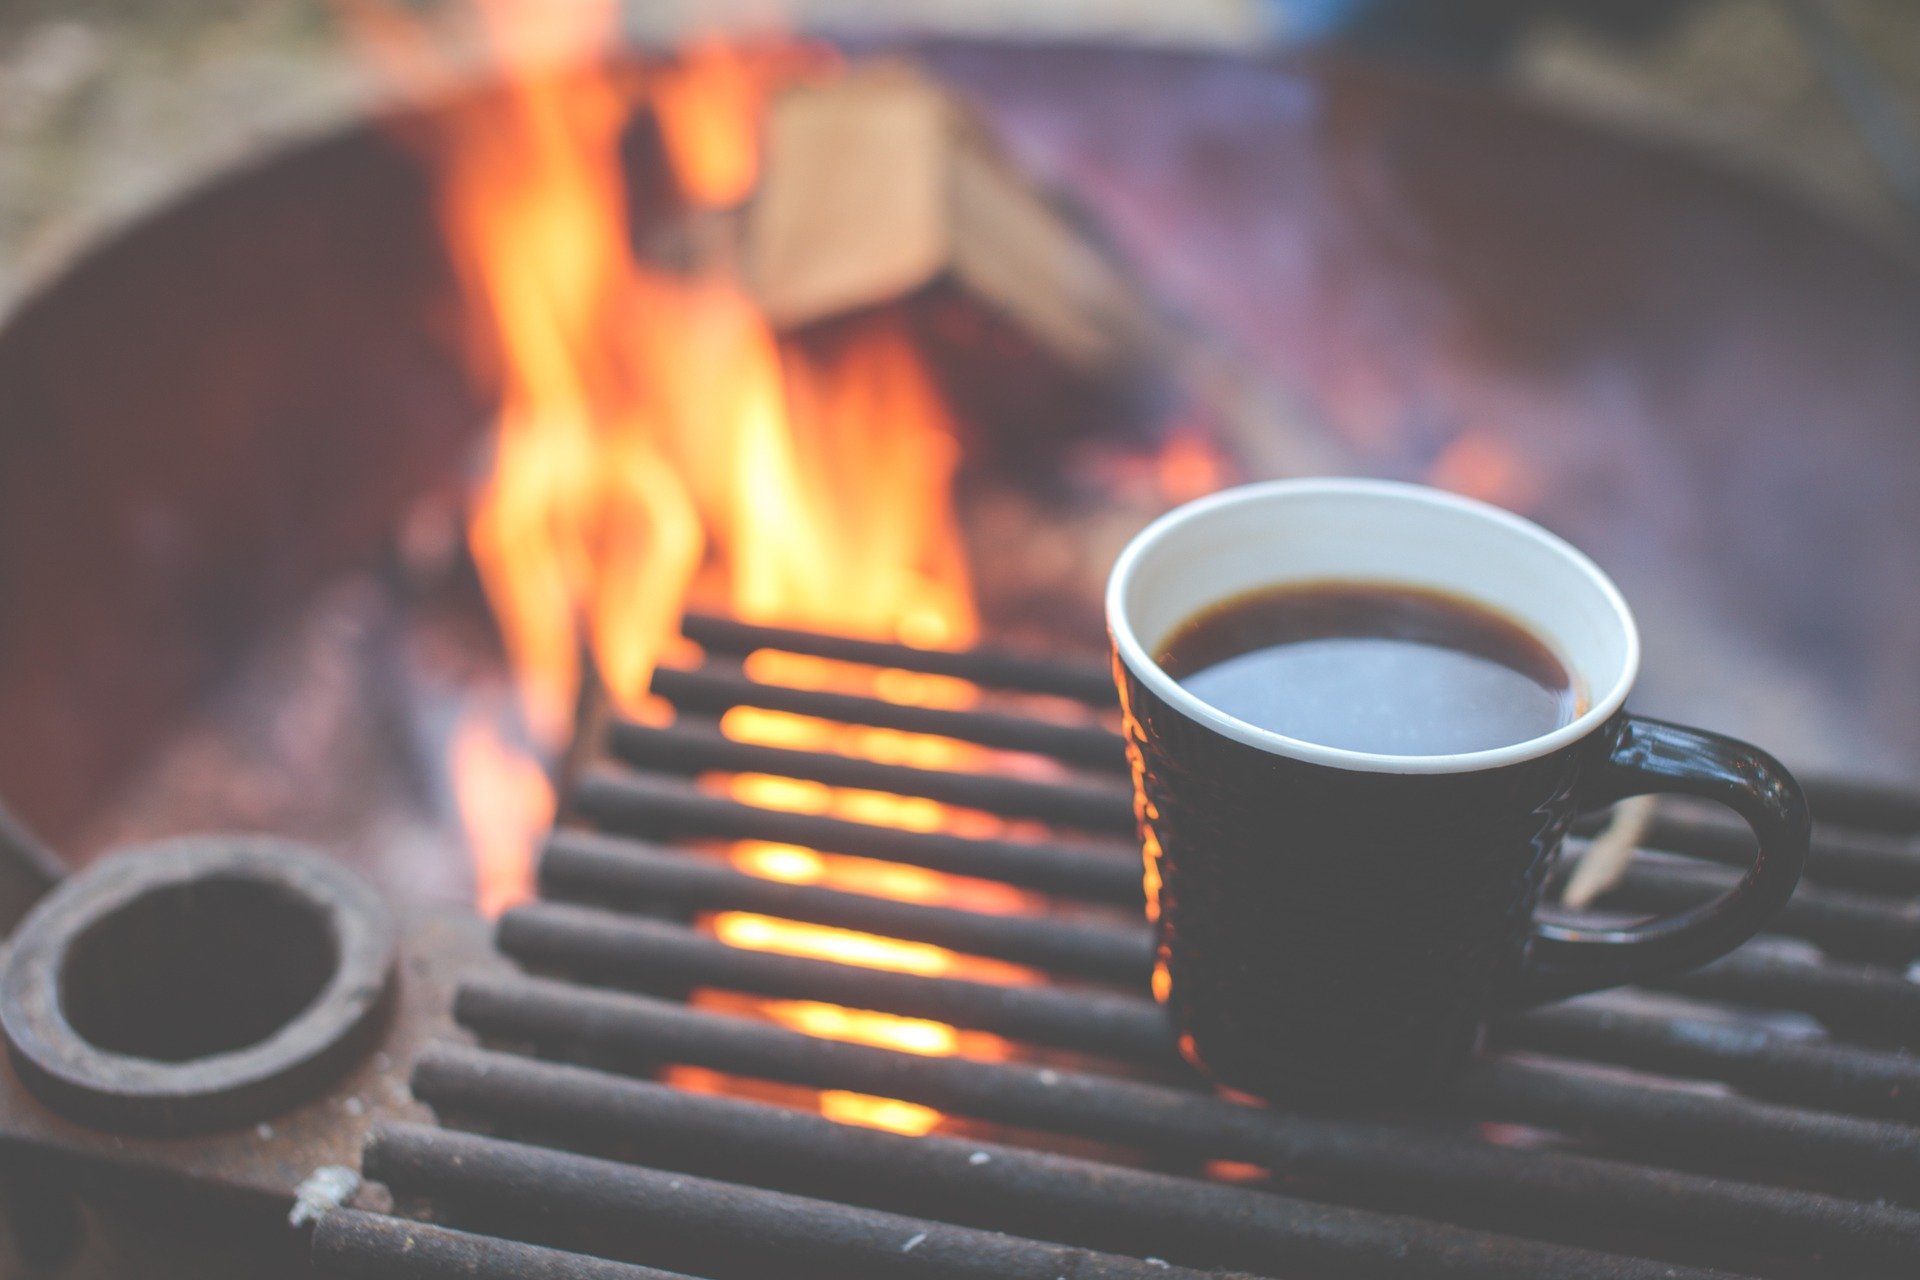 Rv 12 volt appliances for your kitchen - no need to get the camp fire crackling just to make a cup of coffee. Click here to read about the 12v appliances that will be perfect for your small RV kitchen.